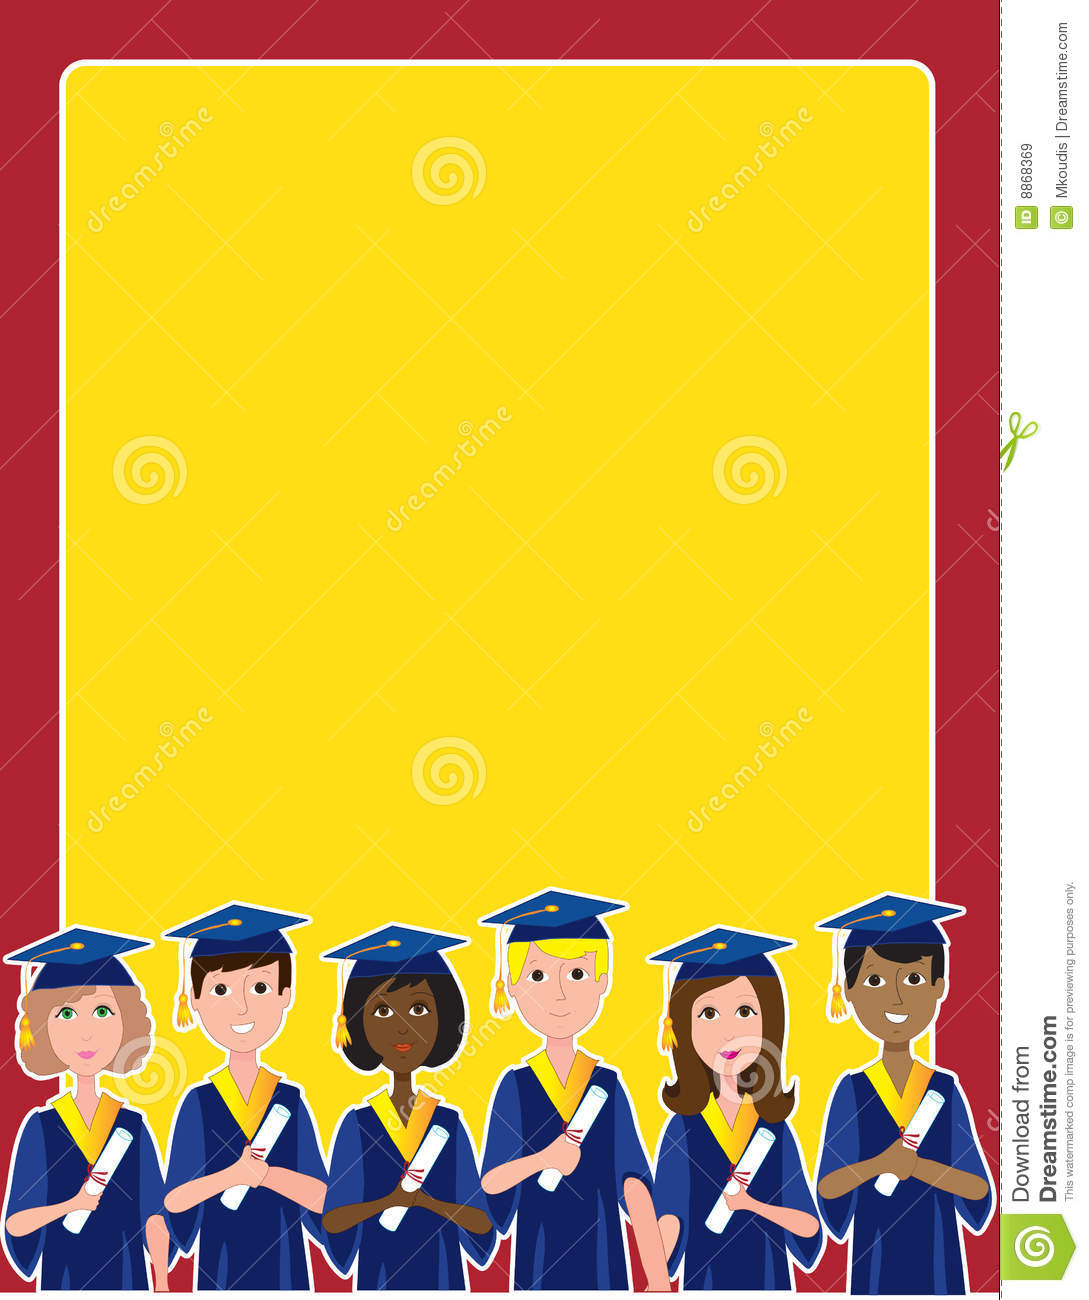 group of graduates with diplomas at the bottom of a frame or border.